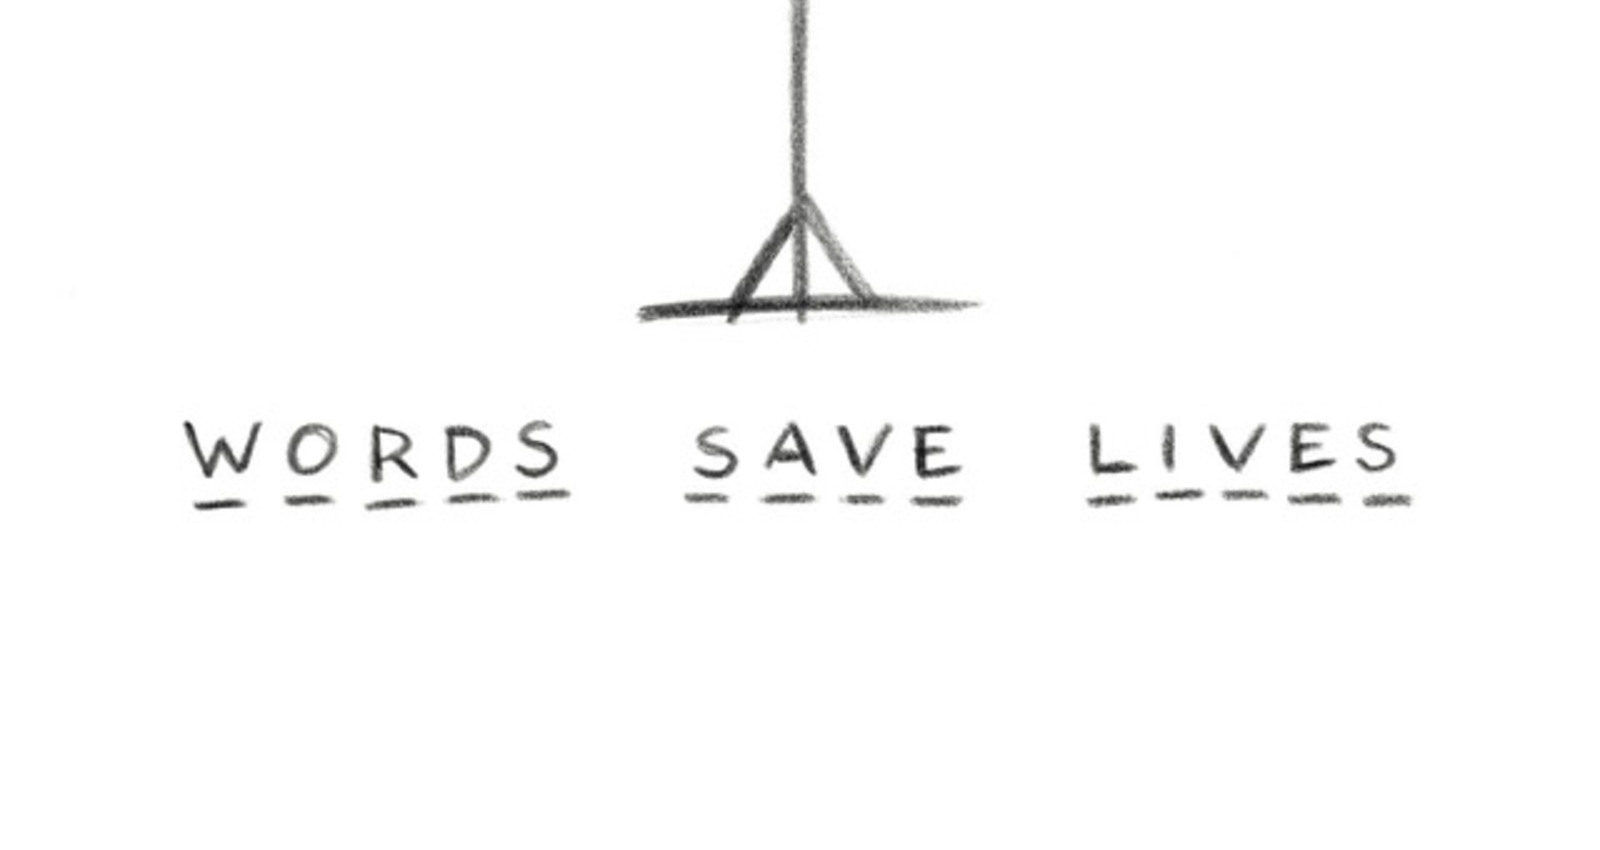 Words Save Lives